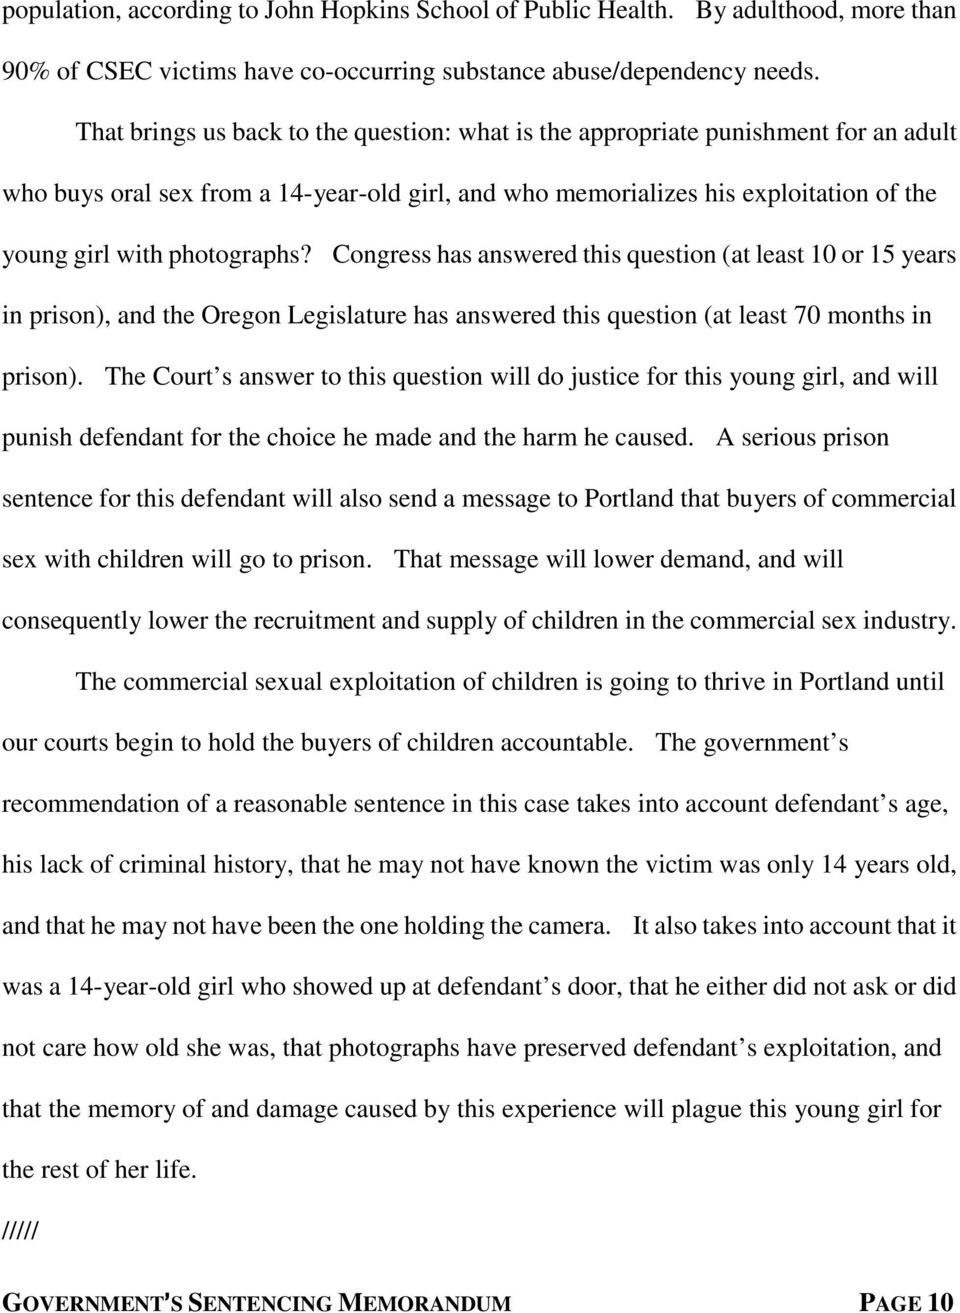 photographs? Congress has answered this question (at least 10 or 15 years in prison), and the Oregon Legislature has answered this question (at least 70 months in prison).